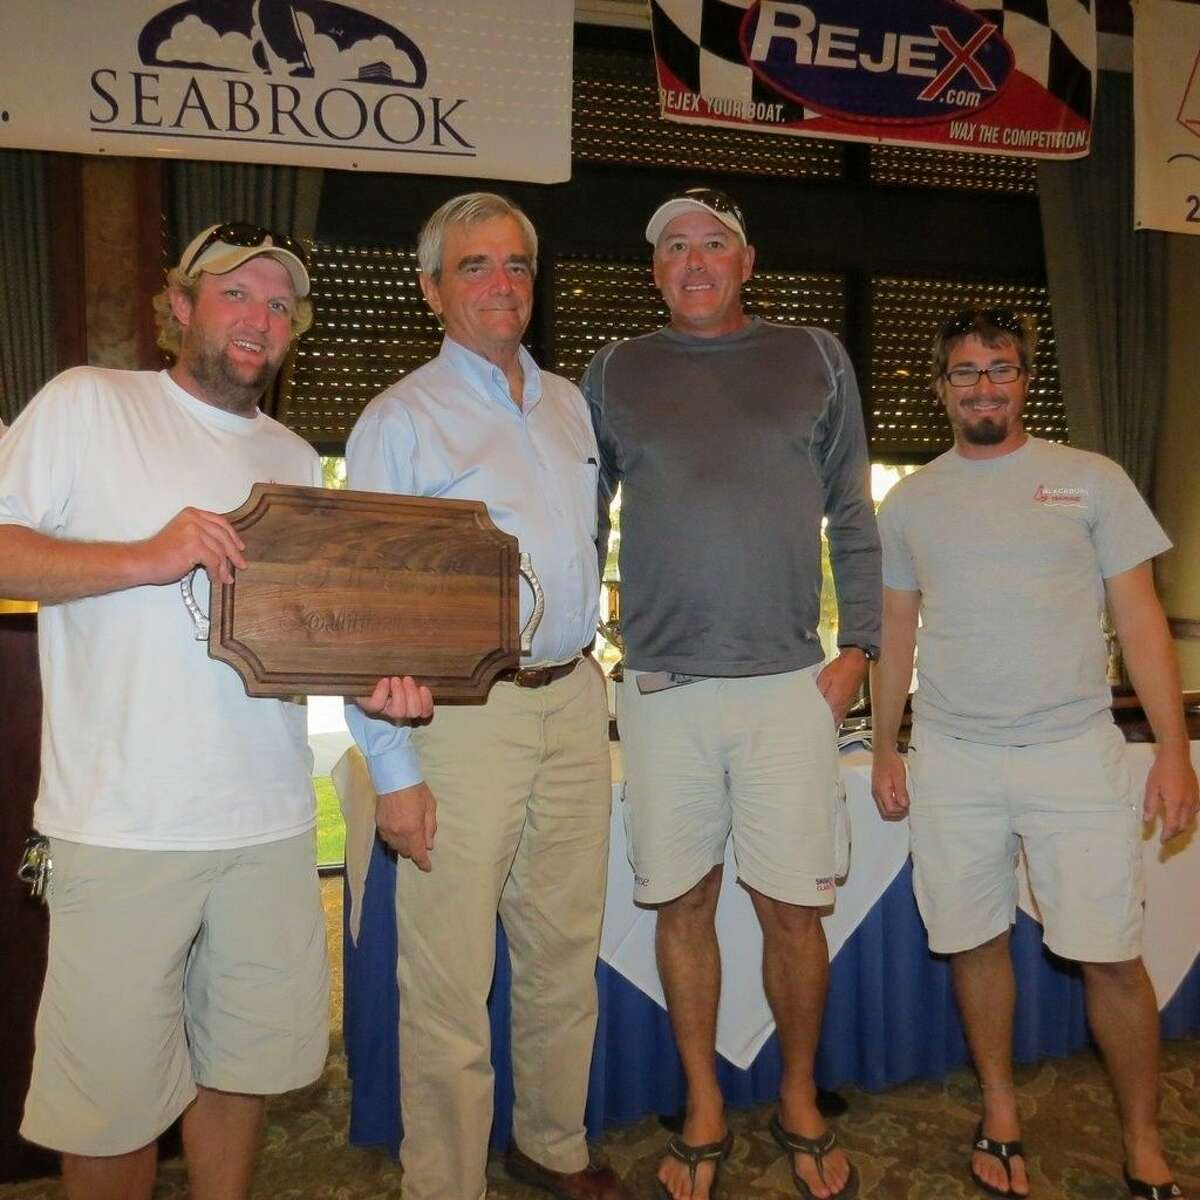 Lakewood Yacht Club racer Casey Lambert (far left) placed first in the competitive J/22 fleet for the 5th Annual J/Fest Southwest Regatta held over the weekend of Nov. 1-2. He is pictured with J/Boat co-founder Rodney Johnstone and his J/22 crew Jay Vige and Jesse Fulmer.